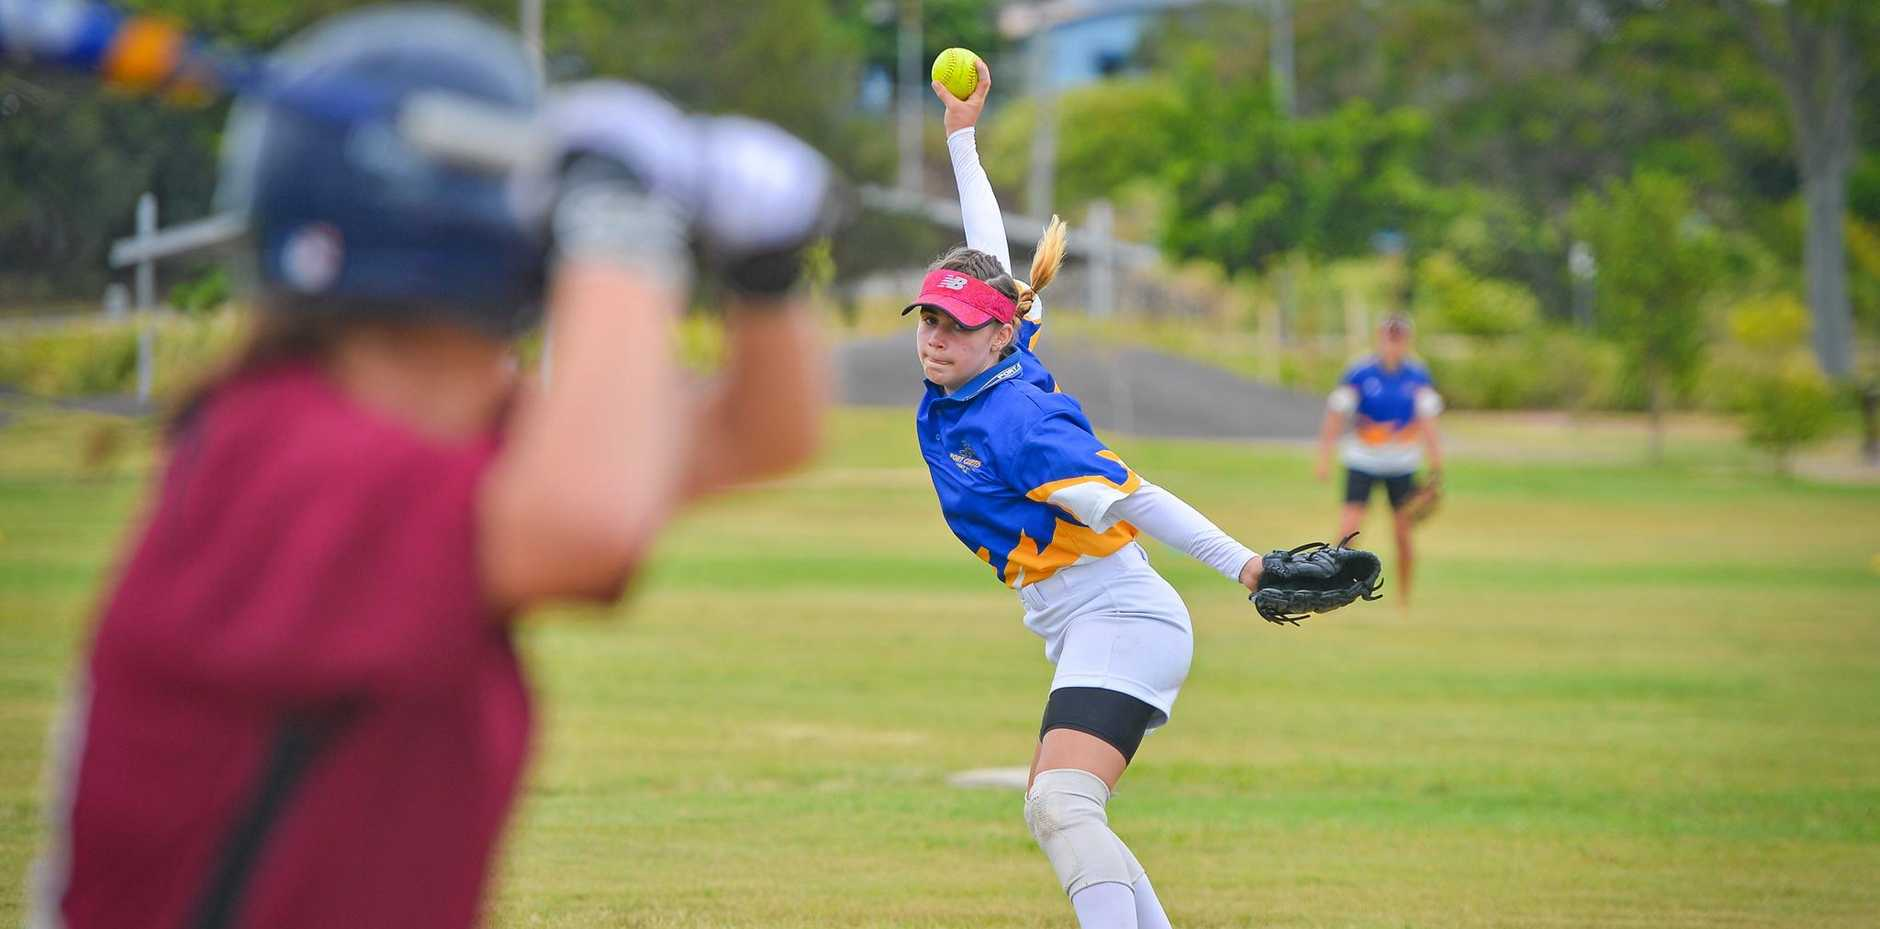 Kirsty Lester, 12, trying out for the 13-19 years Port Curtis School Softball trials yesterday.